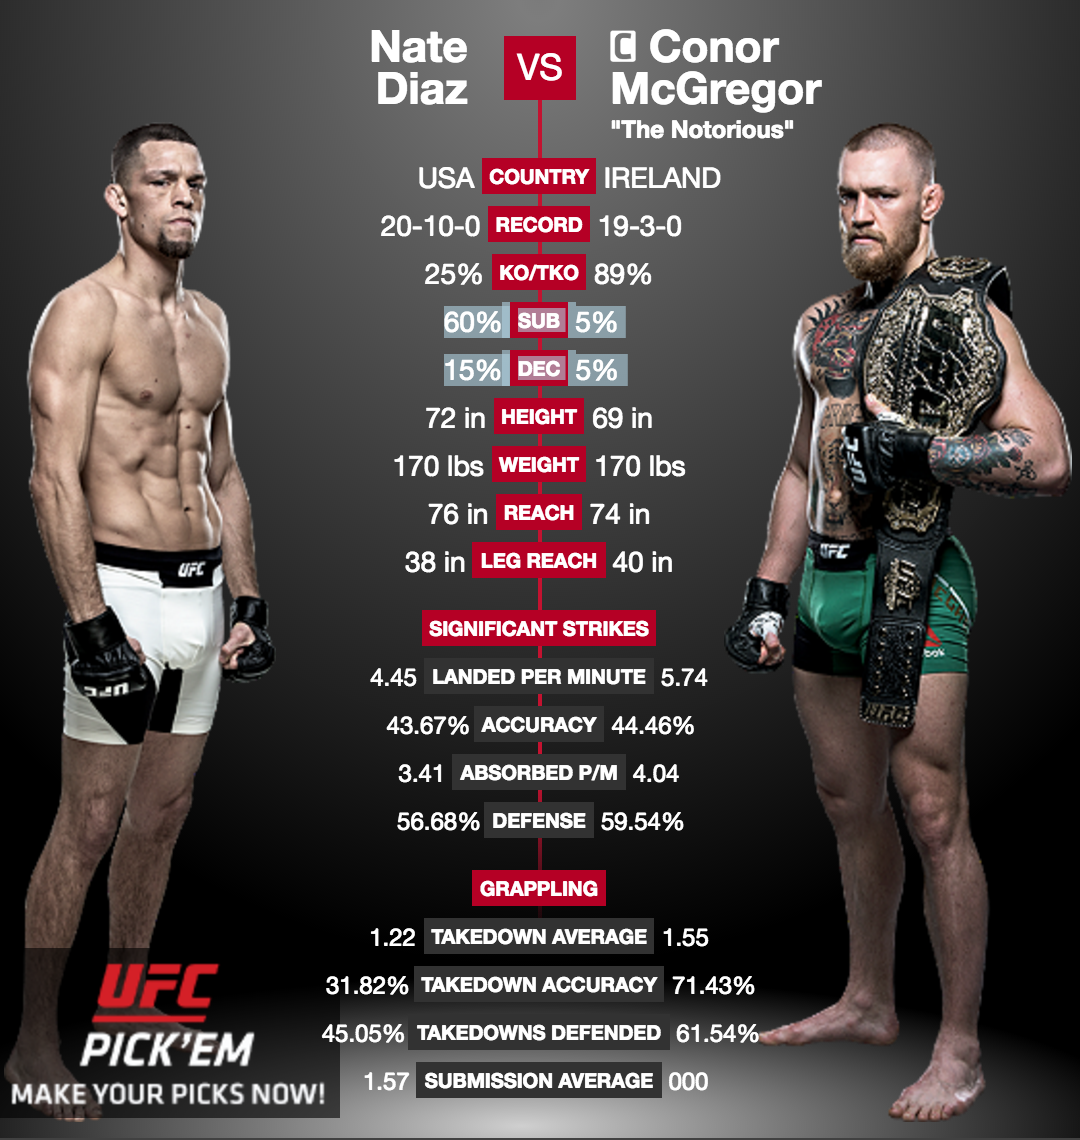 UFC 202 Conor McGregor vs Nate Diaz